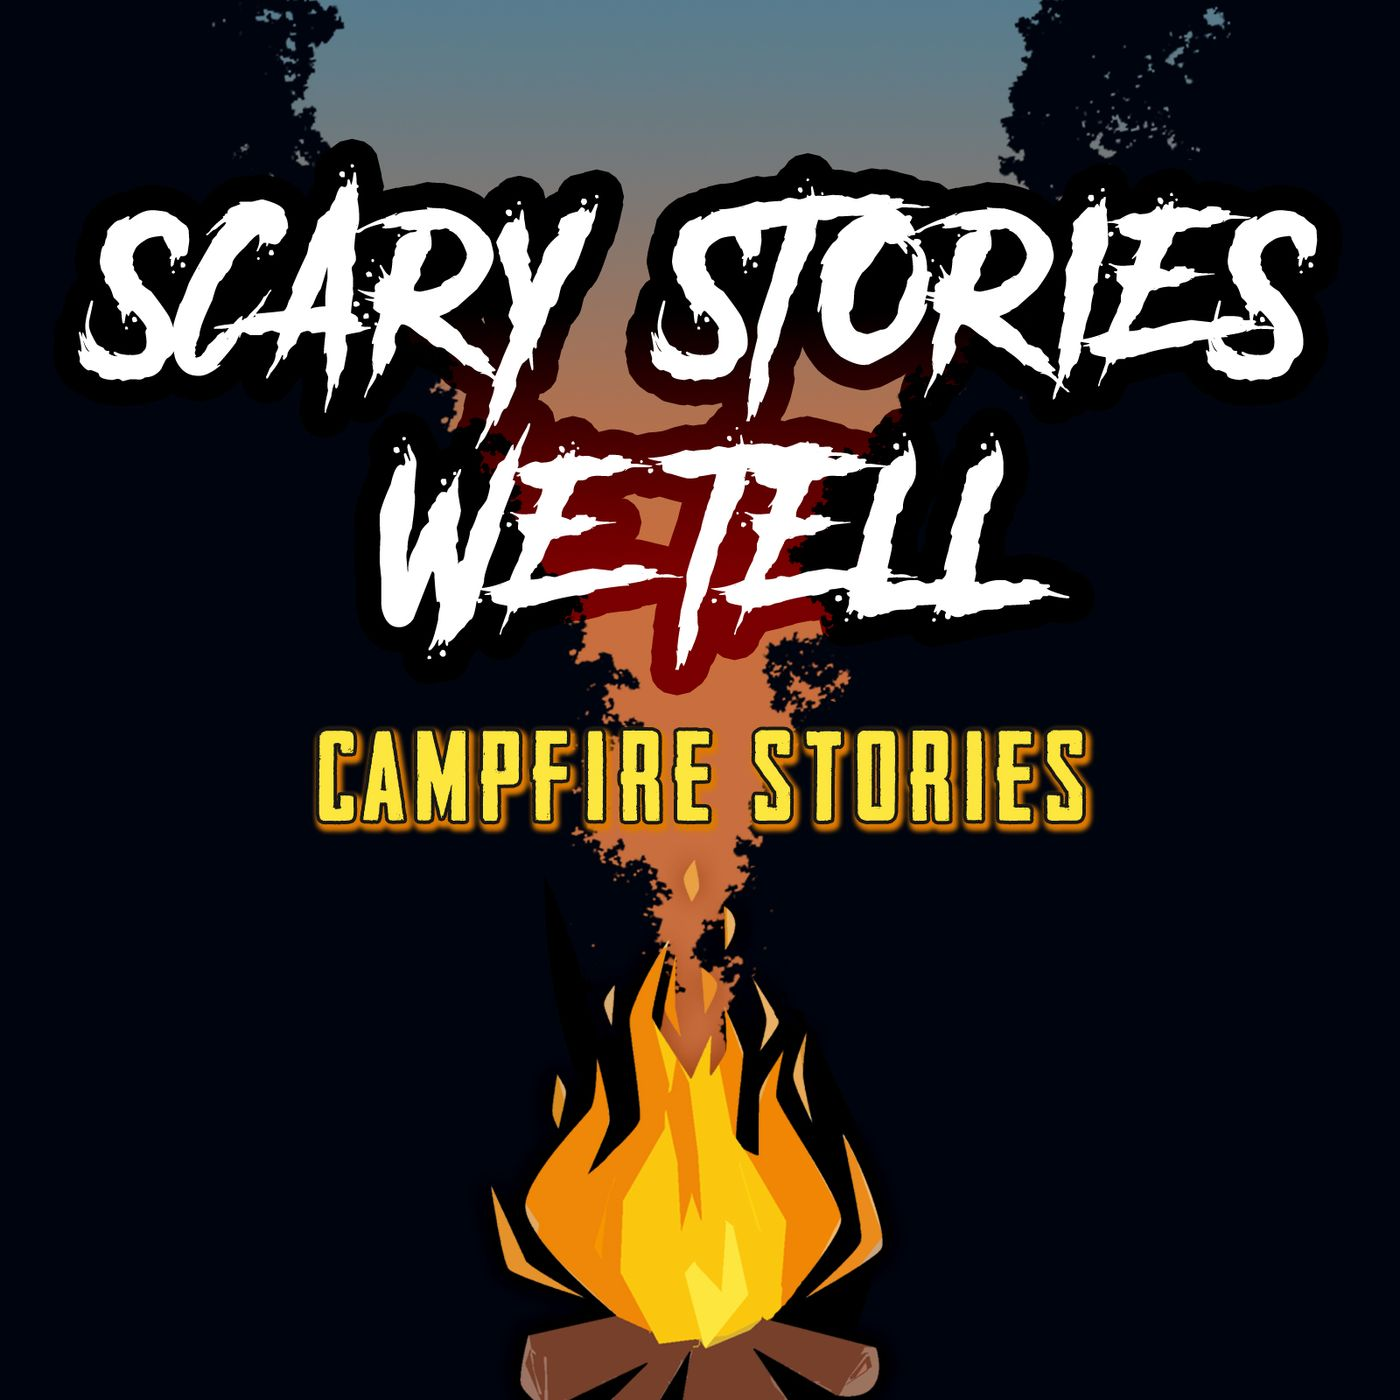 Campfire Stories with James Renner: Byron Preiss, The Secret, Porchlight Project